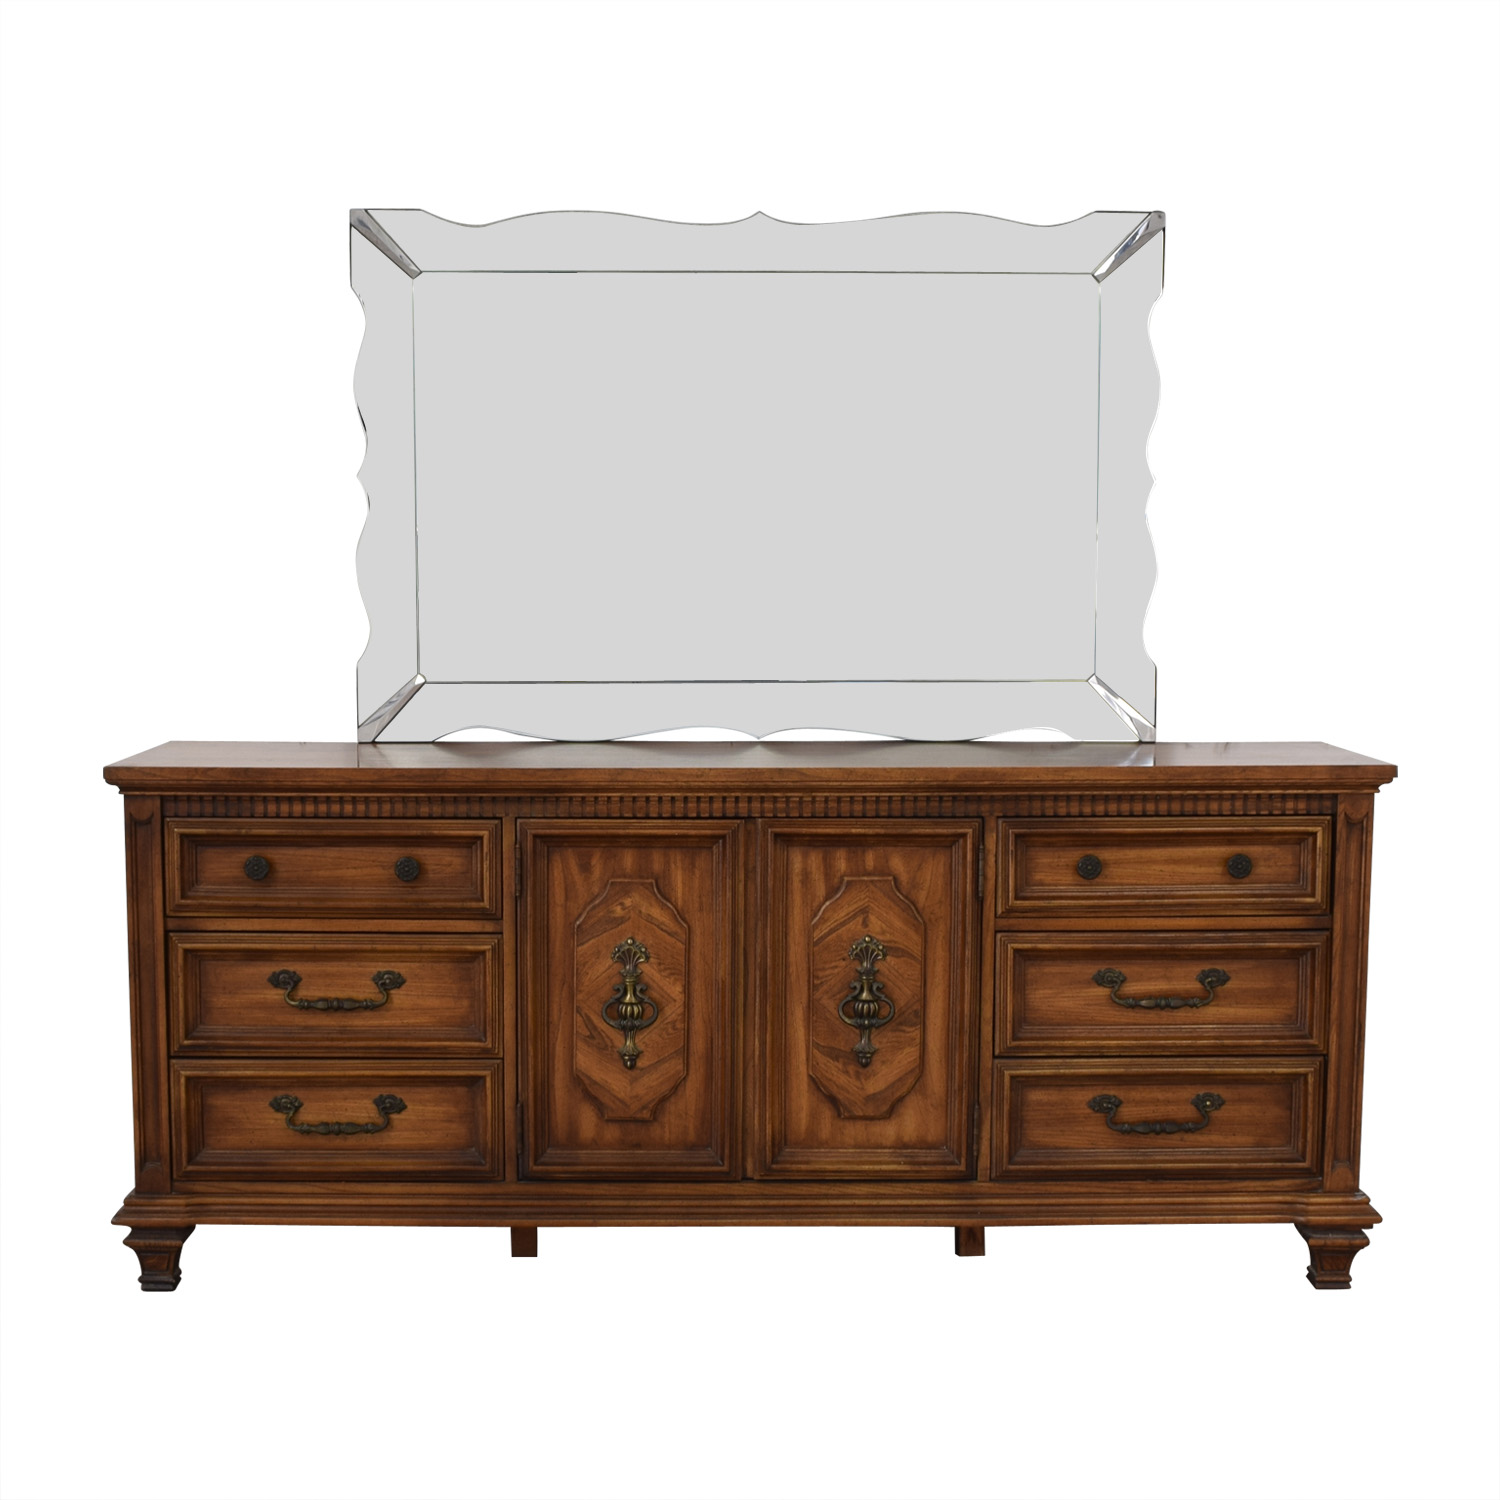 Albe Furniture Nine-Drawer Dresser with Scalloped Mirror / Storage